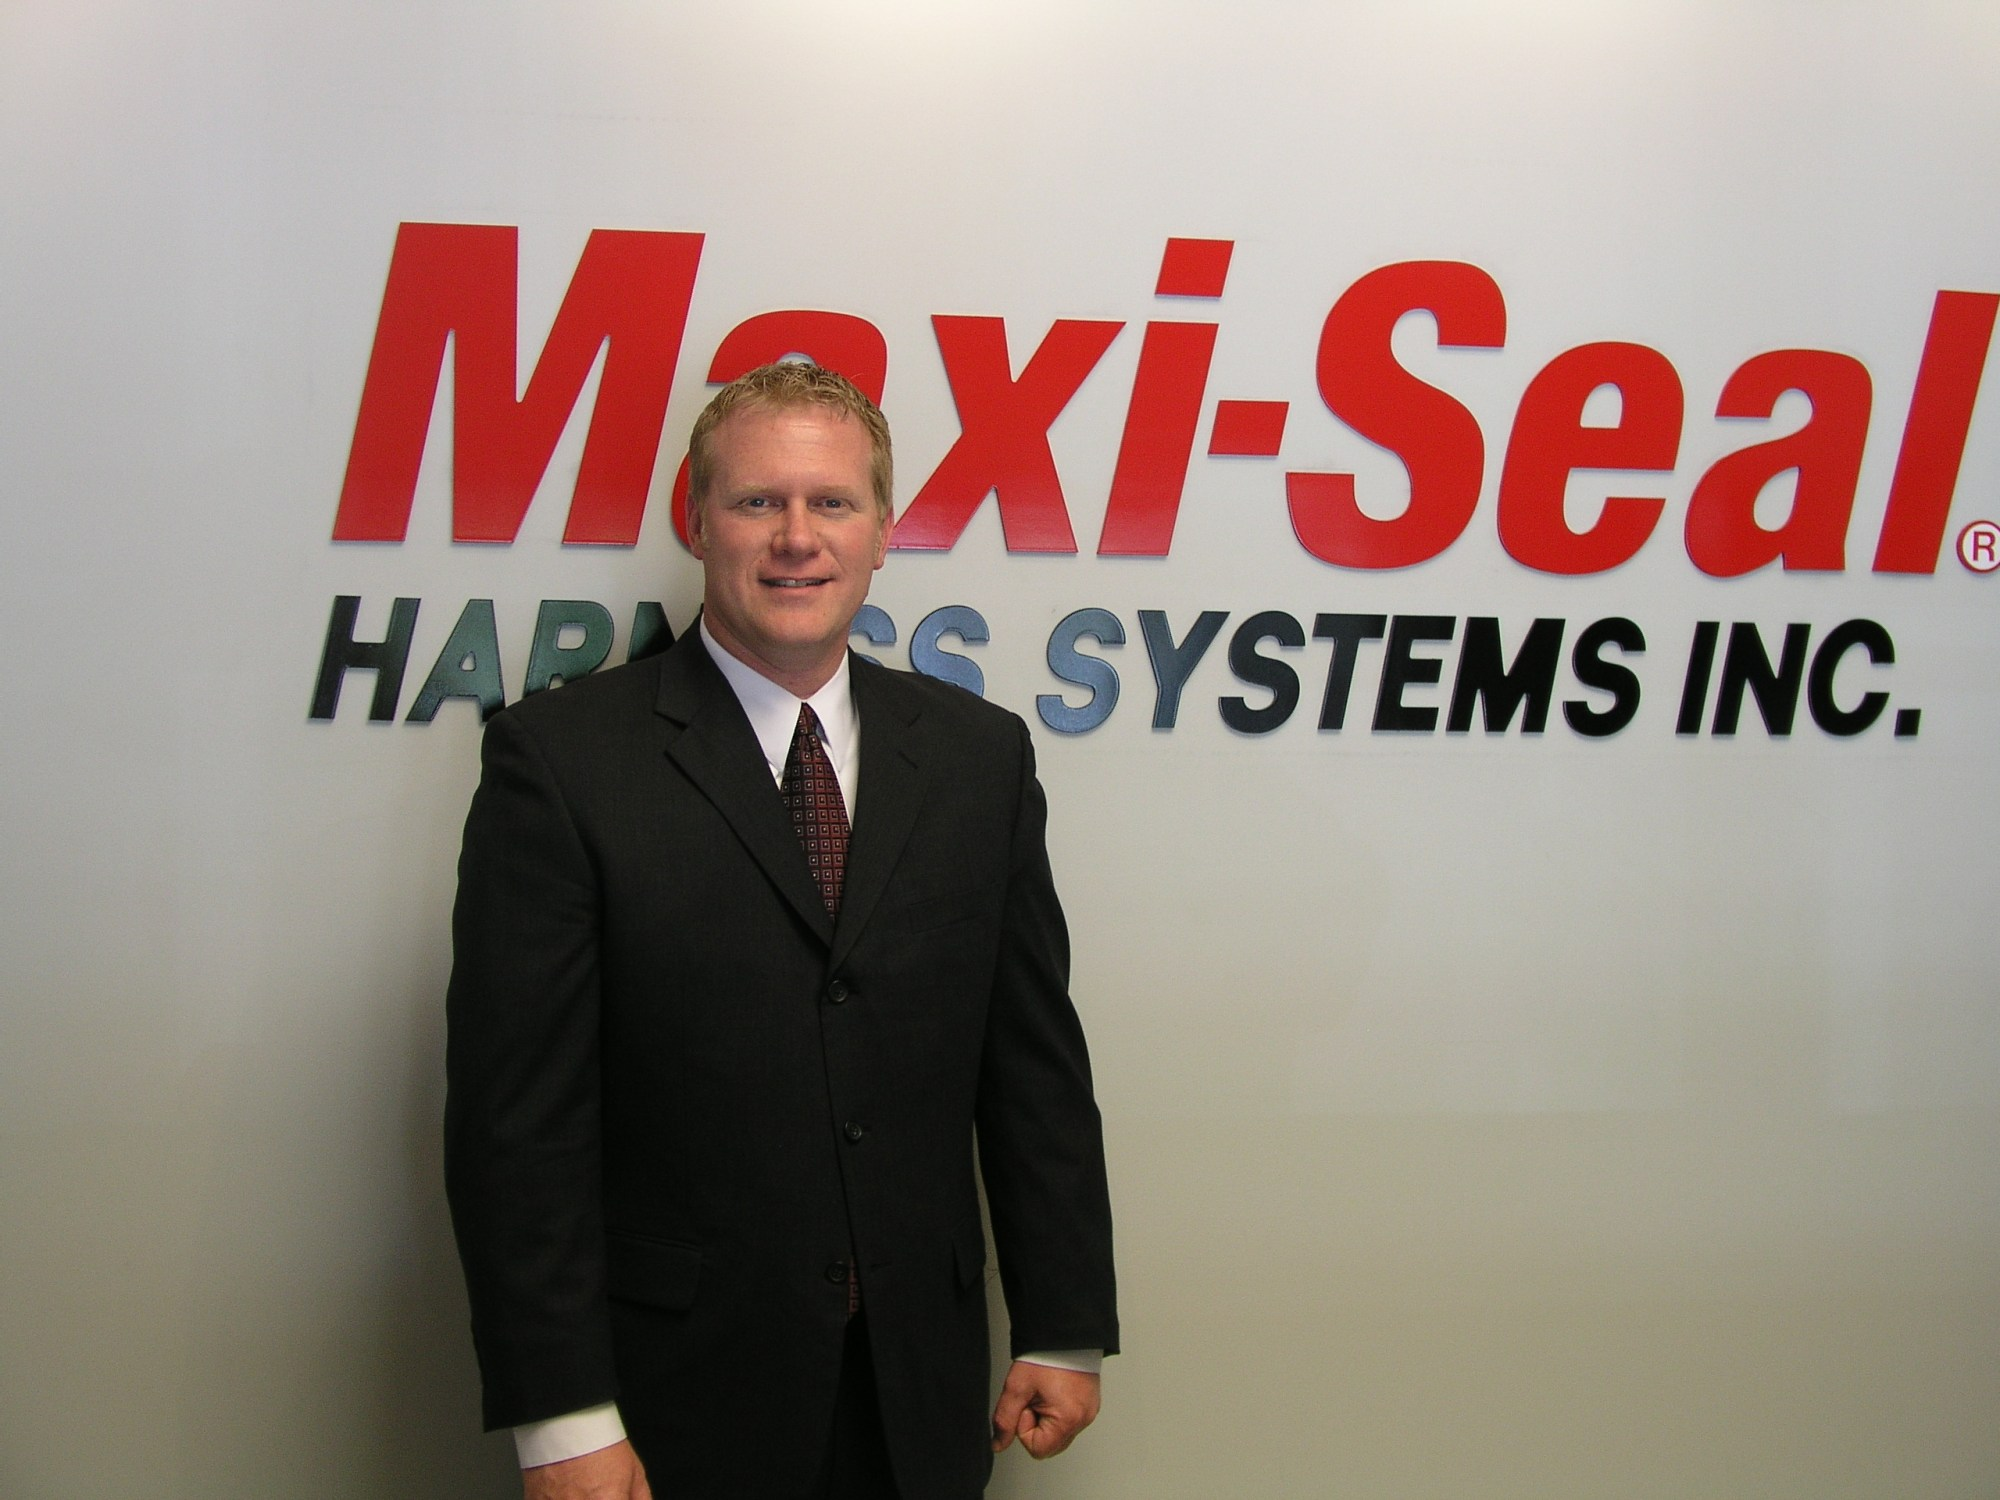 hight resolution of tim barnett new general manager at maxi seal harness systems inc jpg file